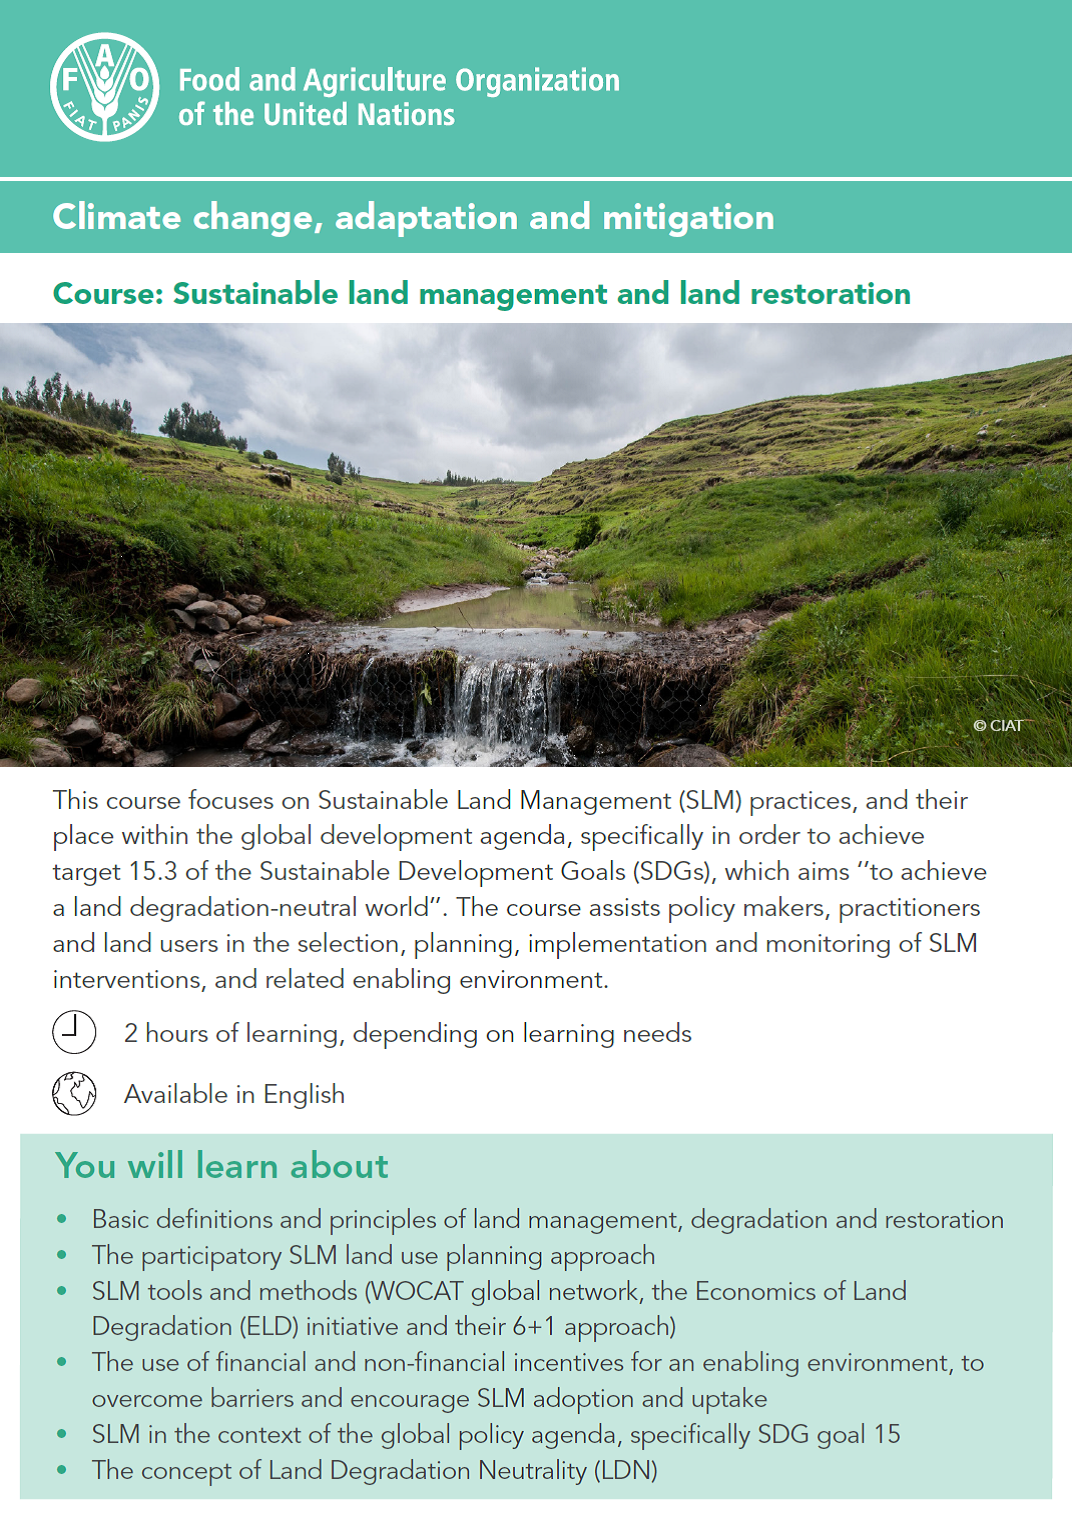 Sustainable land management and land restoration